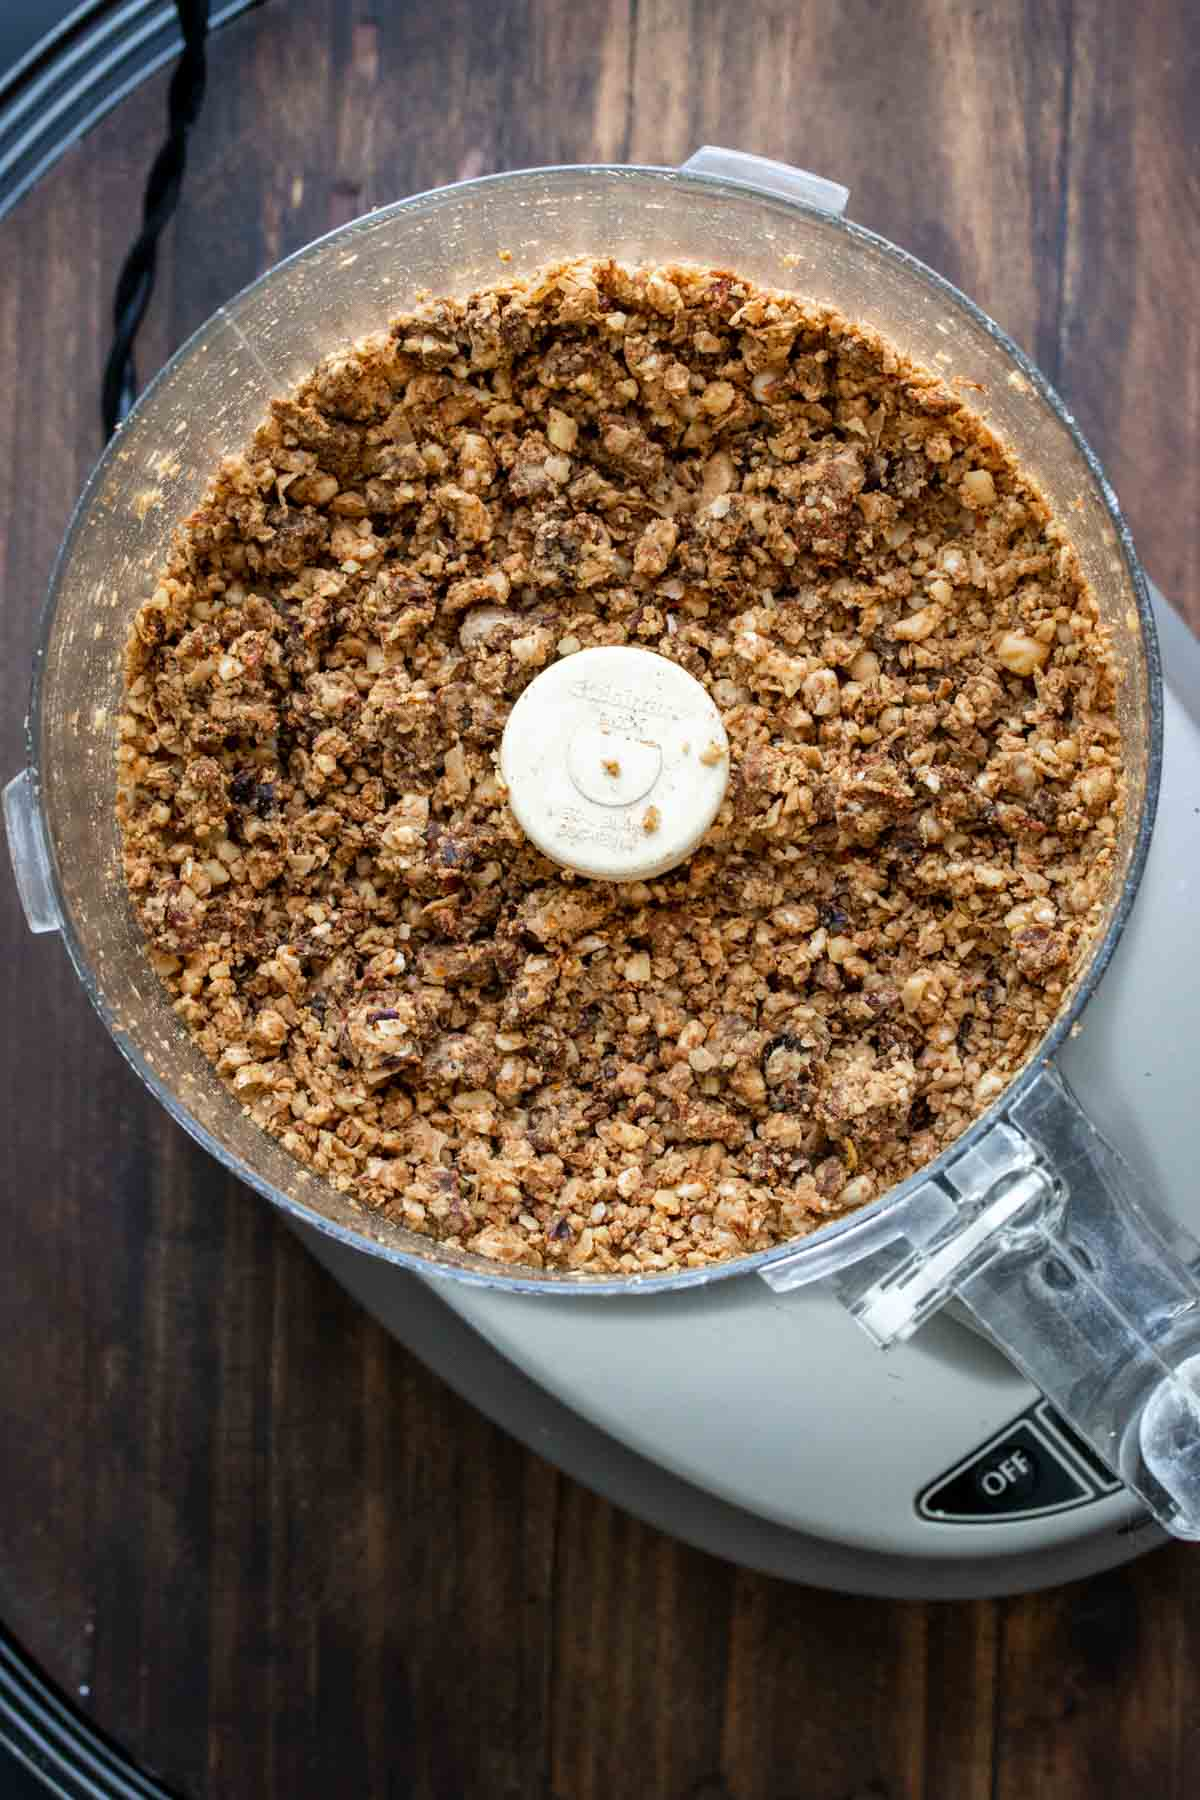 Top view of a food processor with vegan chorizo crumbles in it